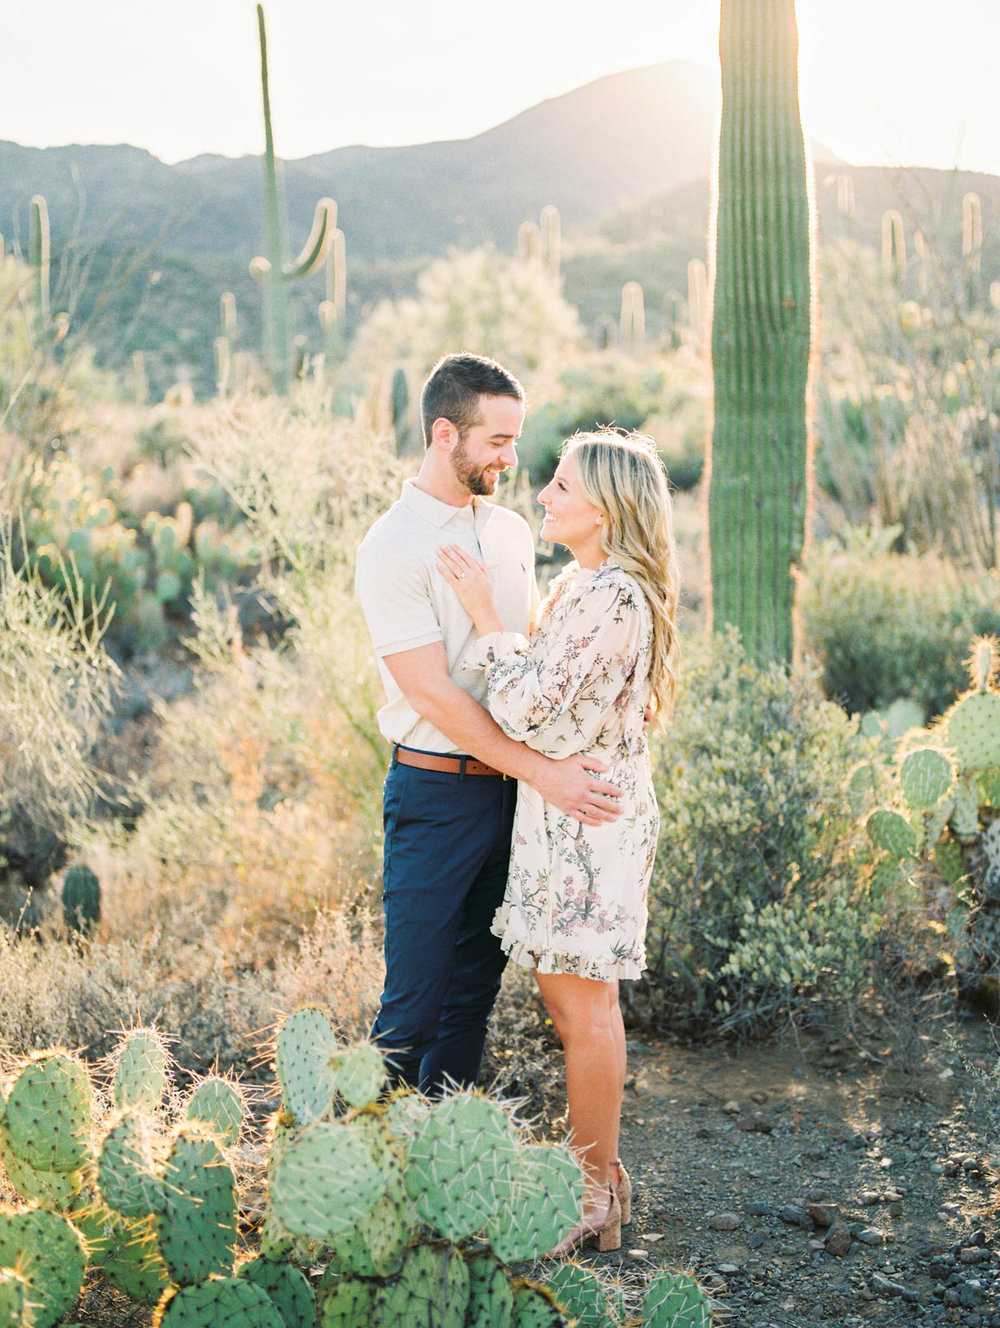 tucson-desert-engagement-session-10.jpg